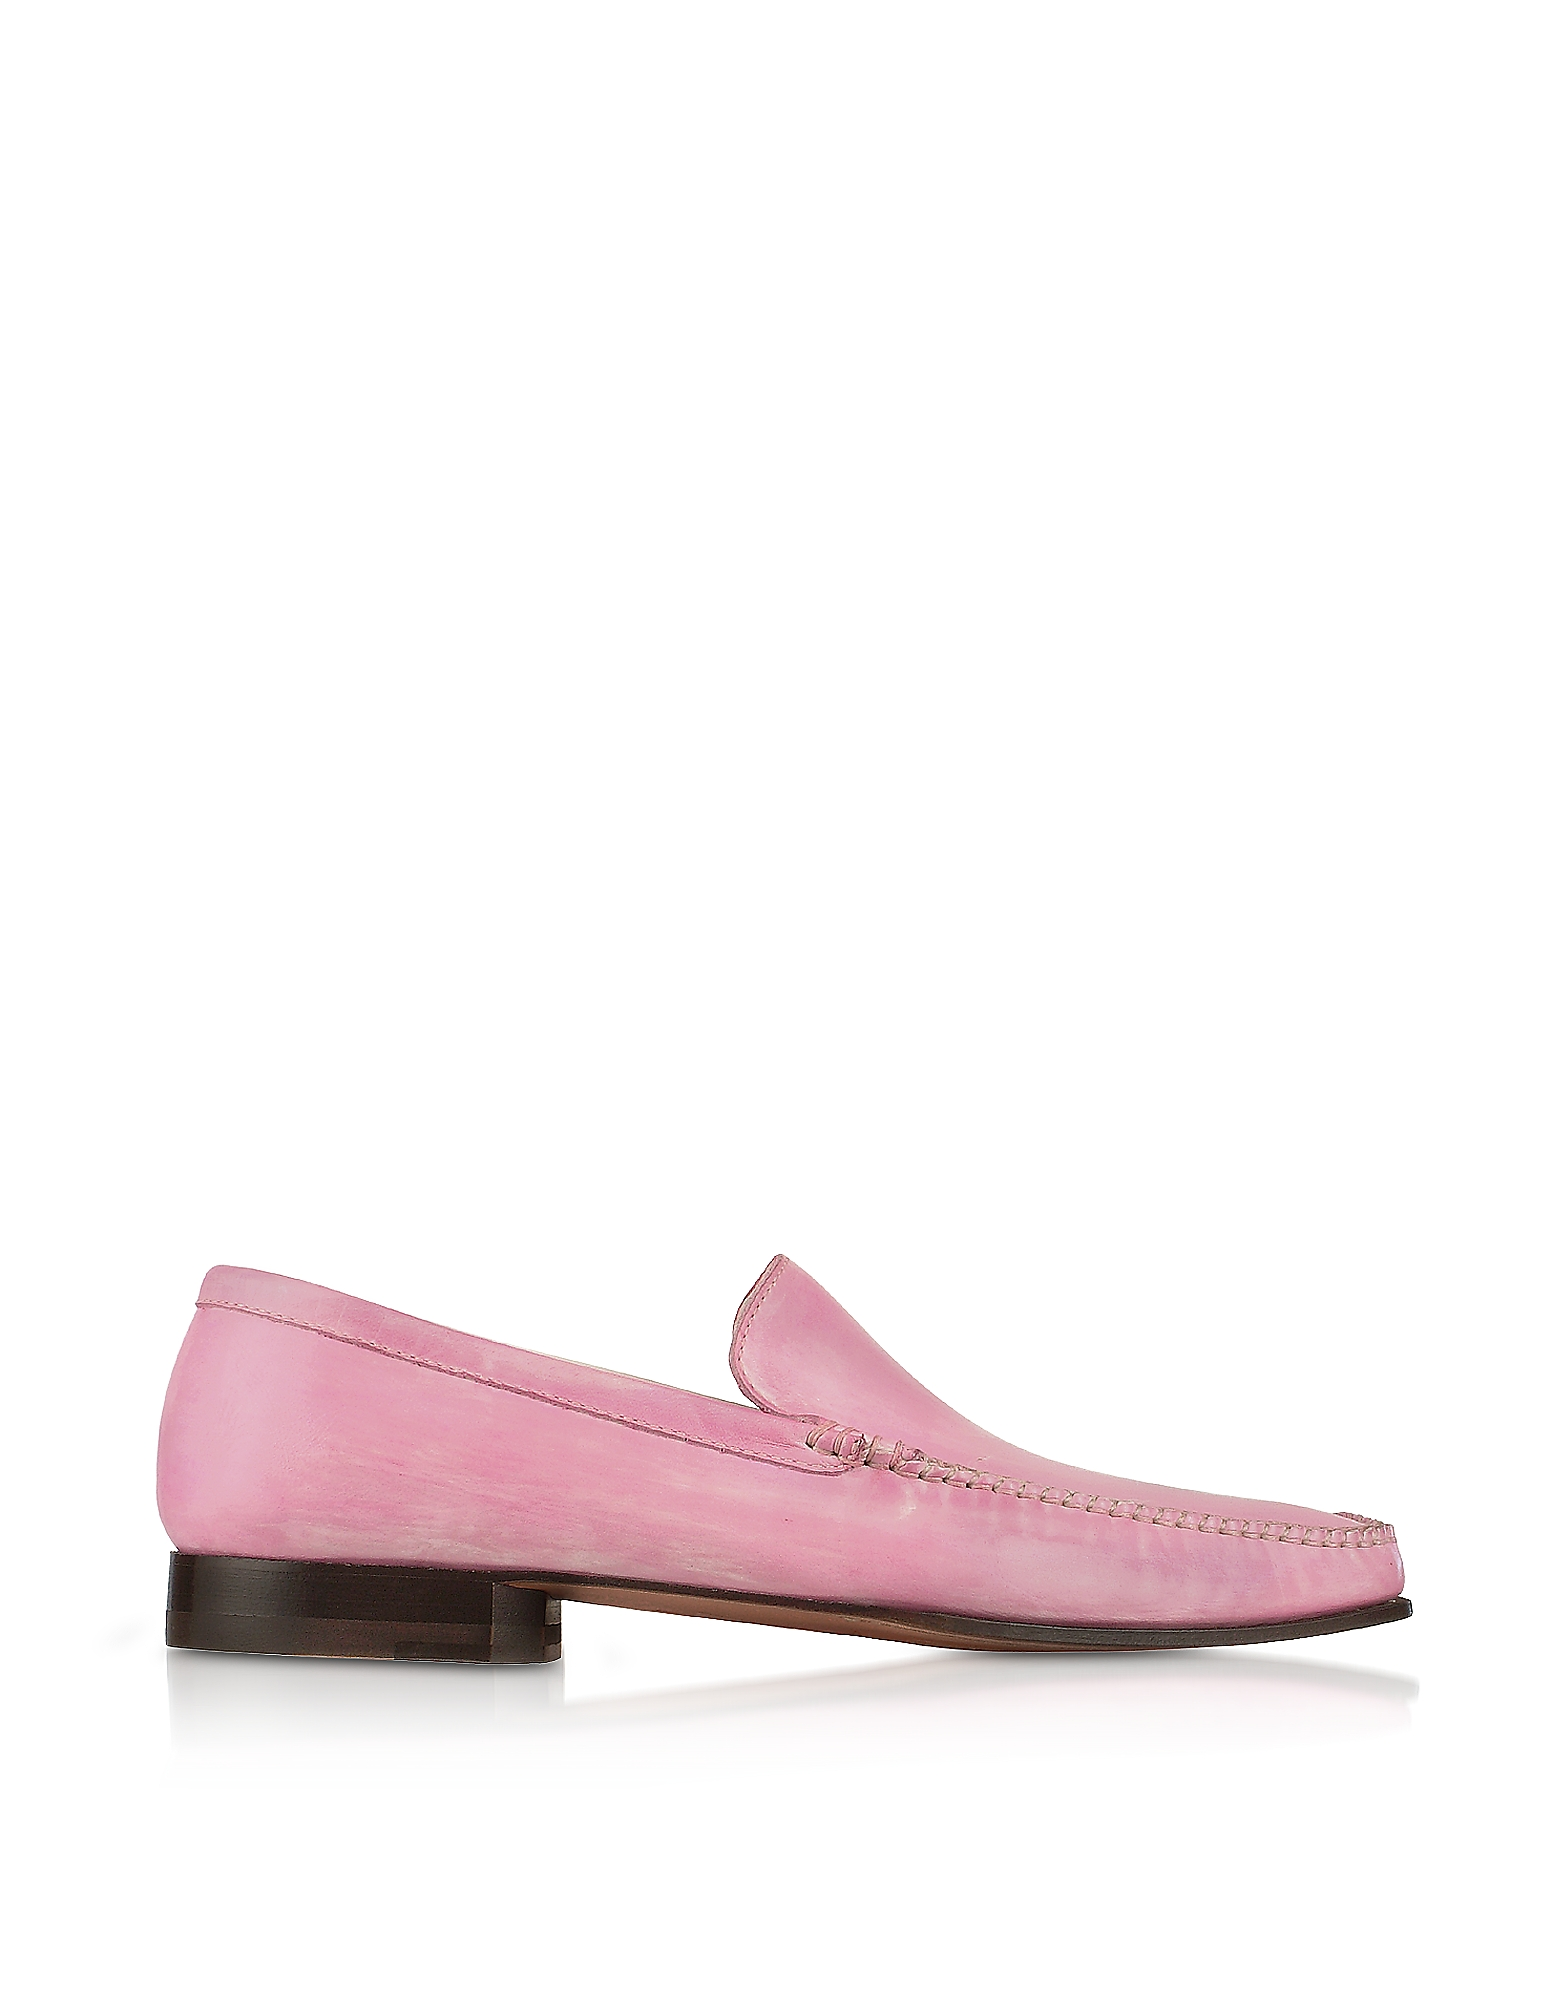 Pakerson Designer Shoes, Pink Italian Handmade Leather Loafer Shoes